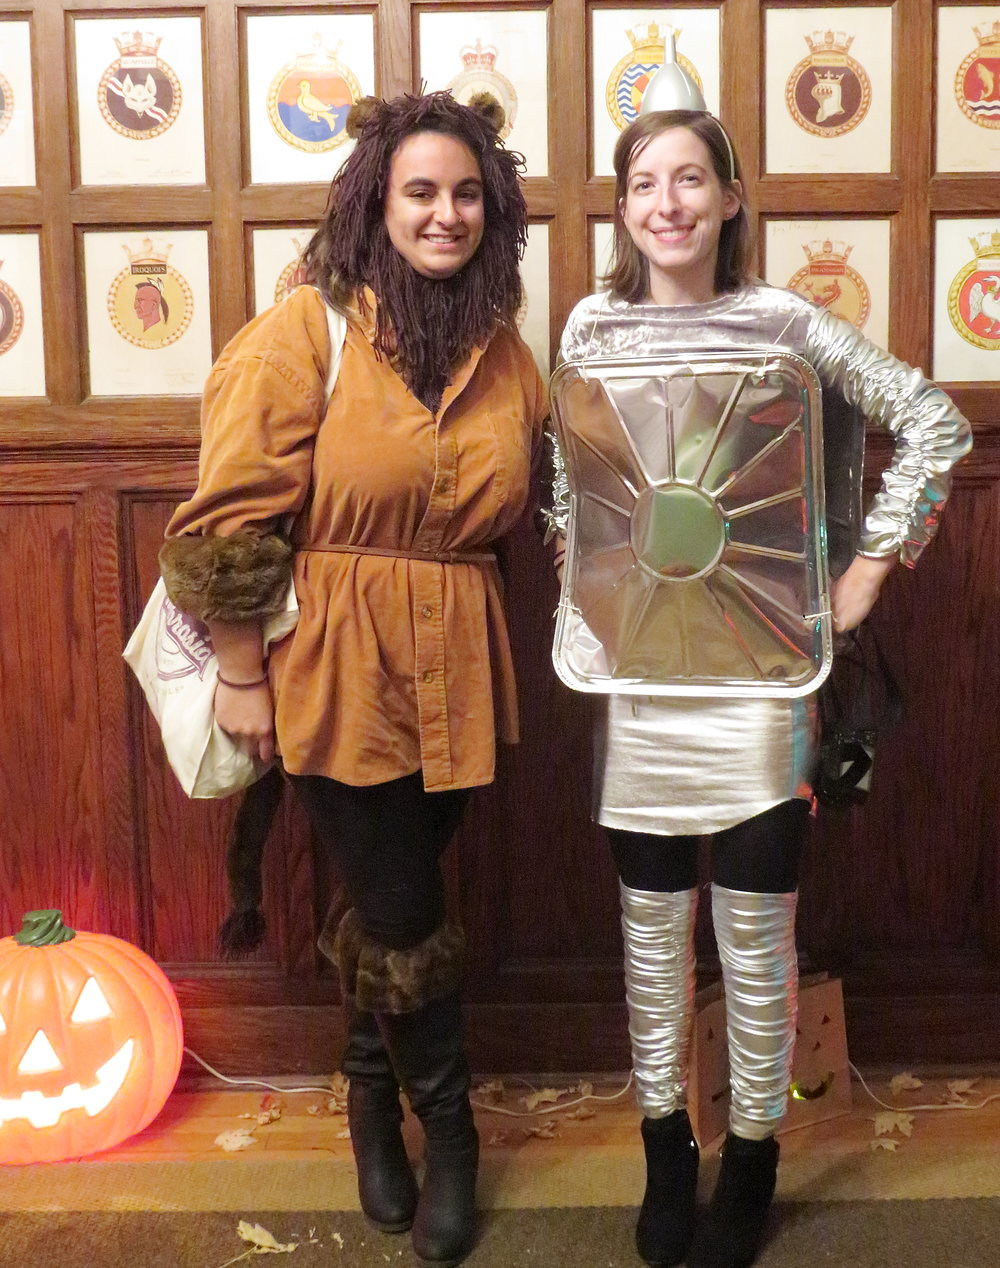 FUNNIEST COSTUME   Look how cute the   Two Market Girls   are!  We're especially loving their use of recycled items!  Thank you to  Mindful Macarons  for donating an amazing prize of yummy Pumpkin Spice macaroons - Vegan of course!    Photo taken by Aaron Fisher